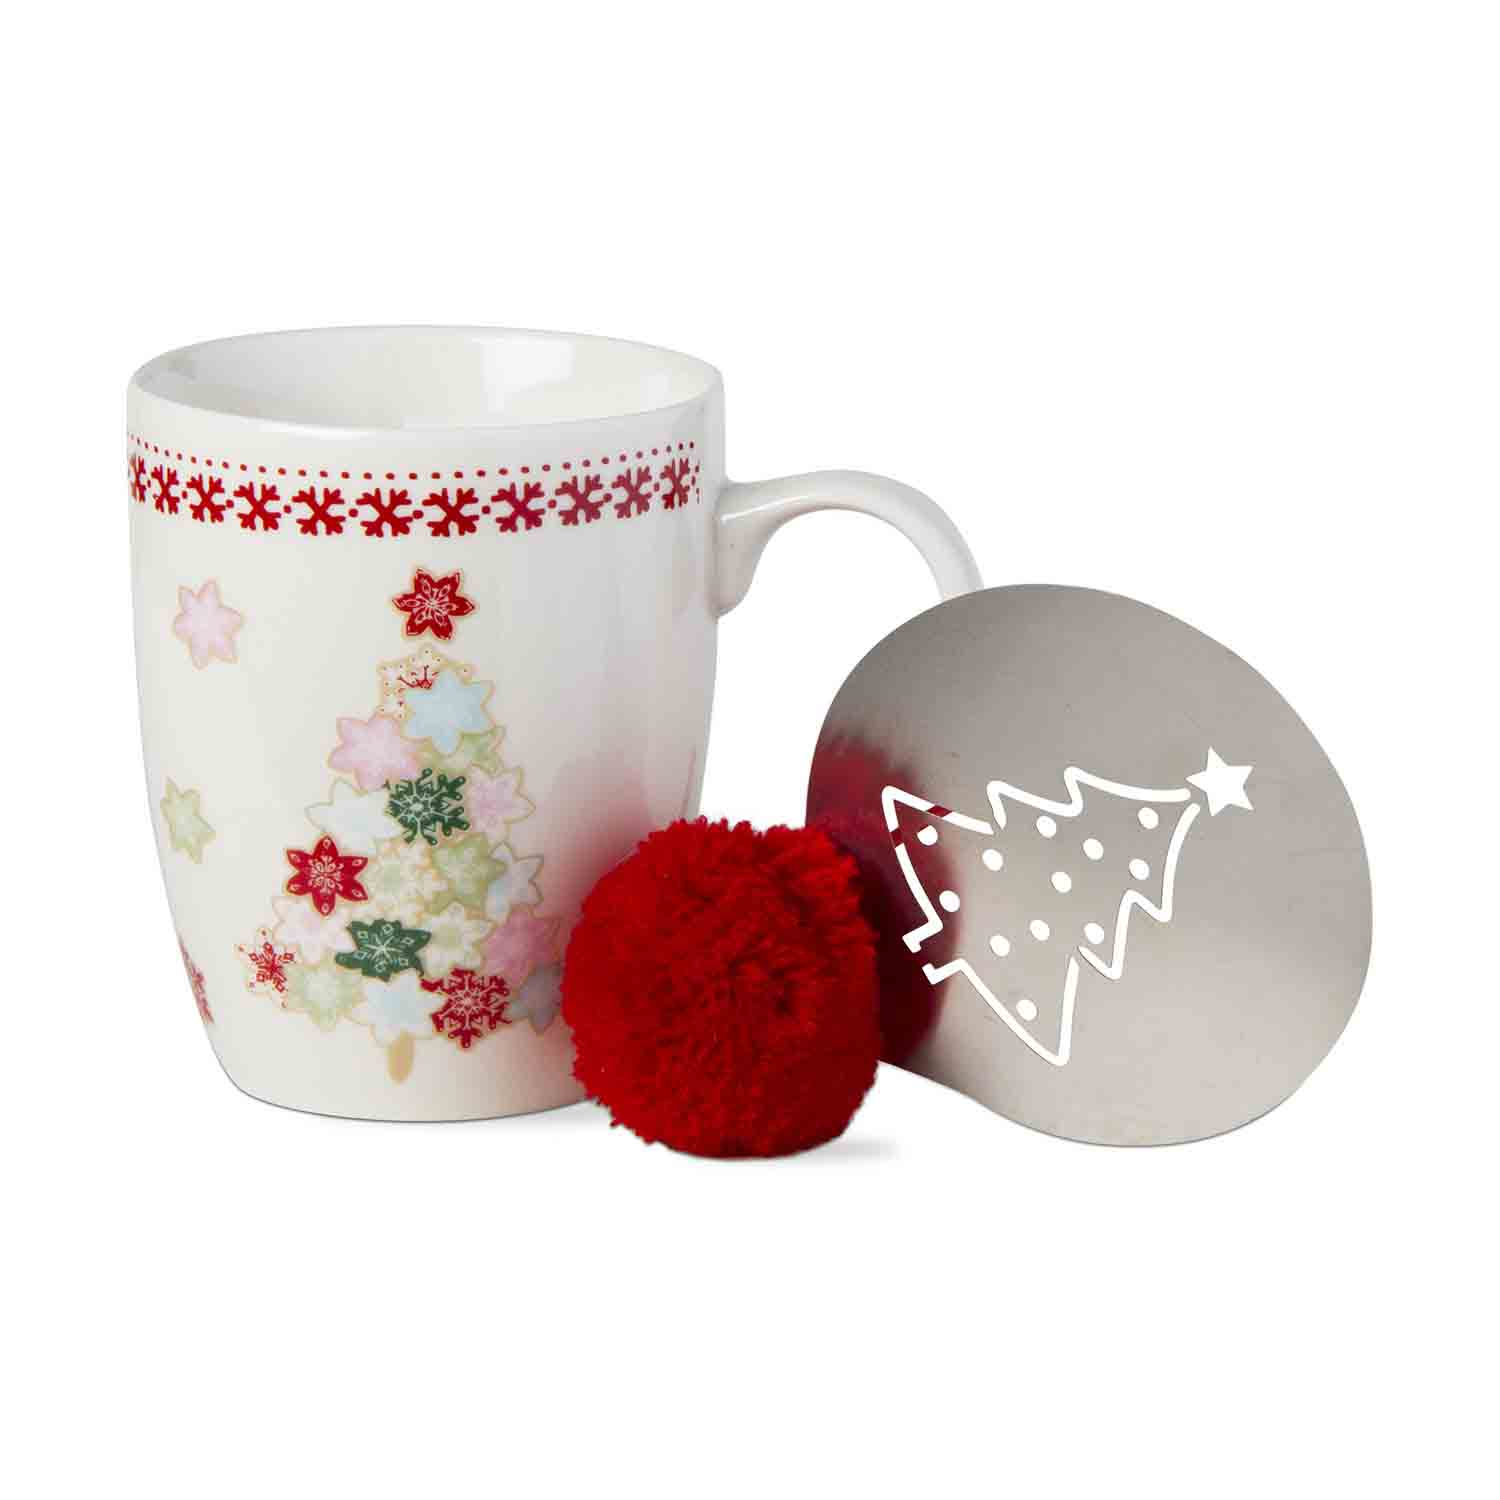 Christmas Tree Mug And Stencil Set